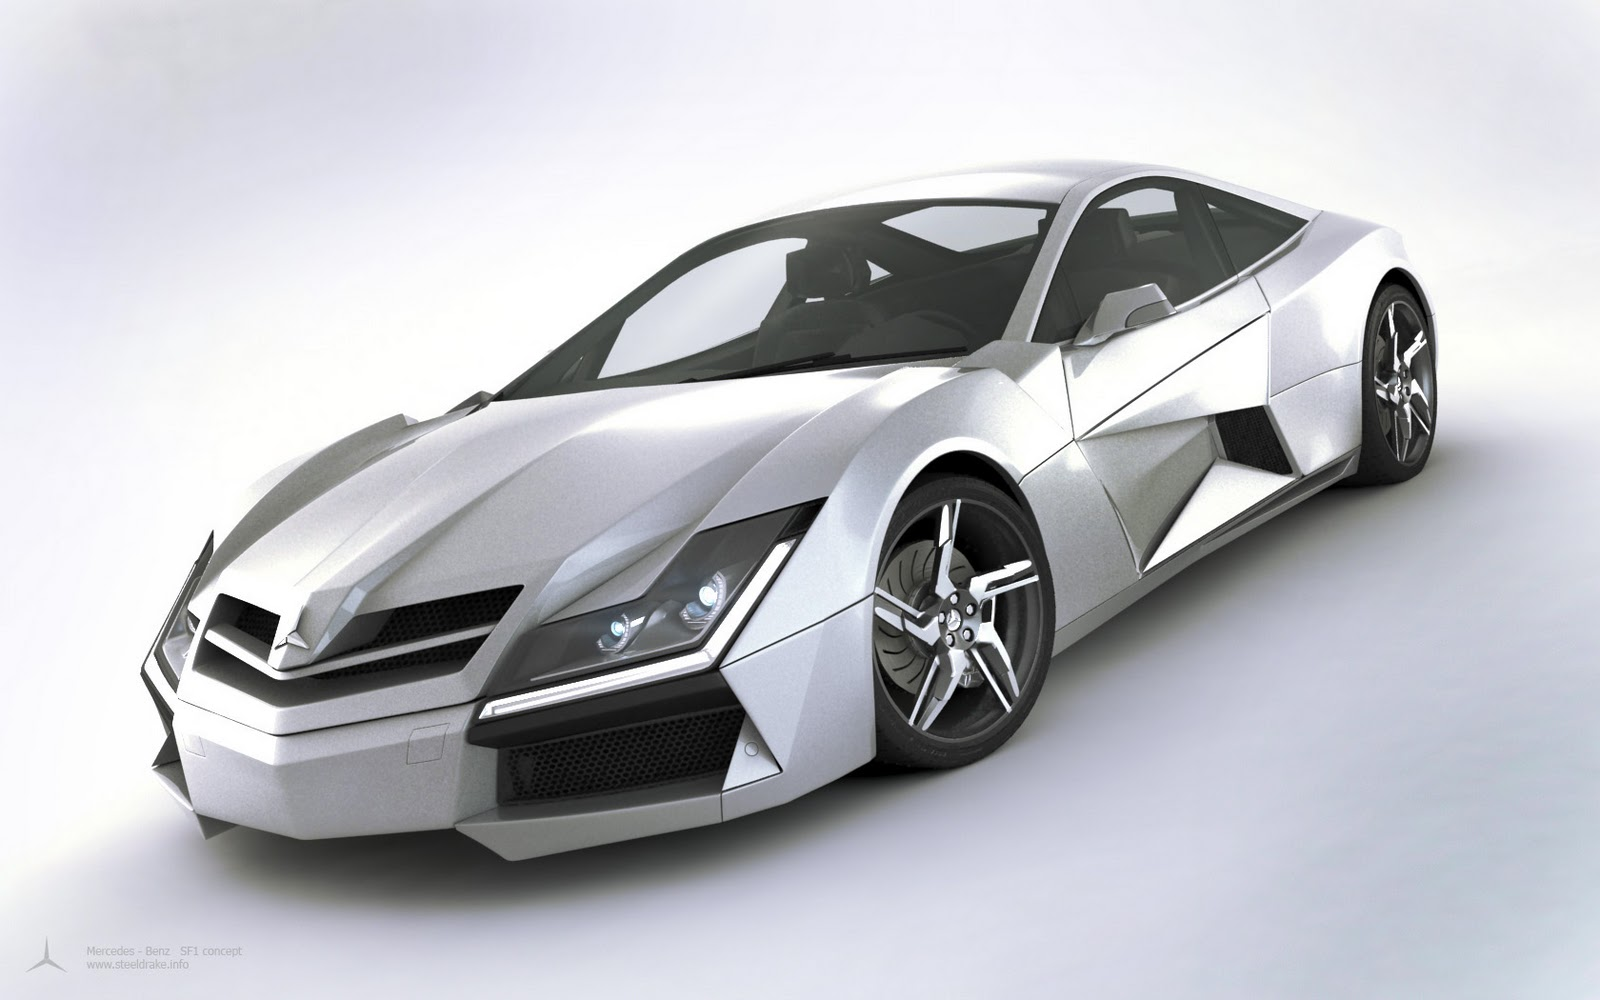 Super punch mercedes benz sf1 concept car for Sports car mercedes benz